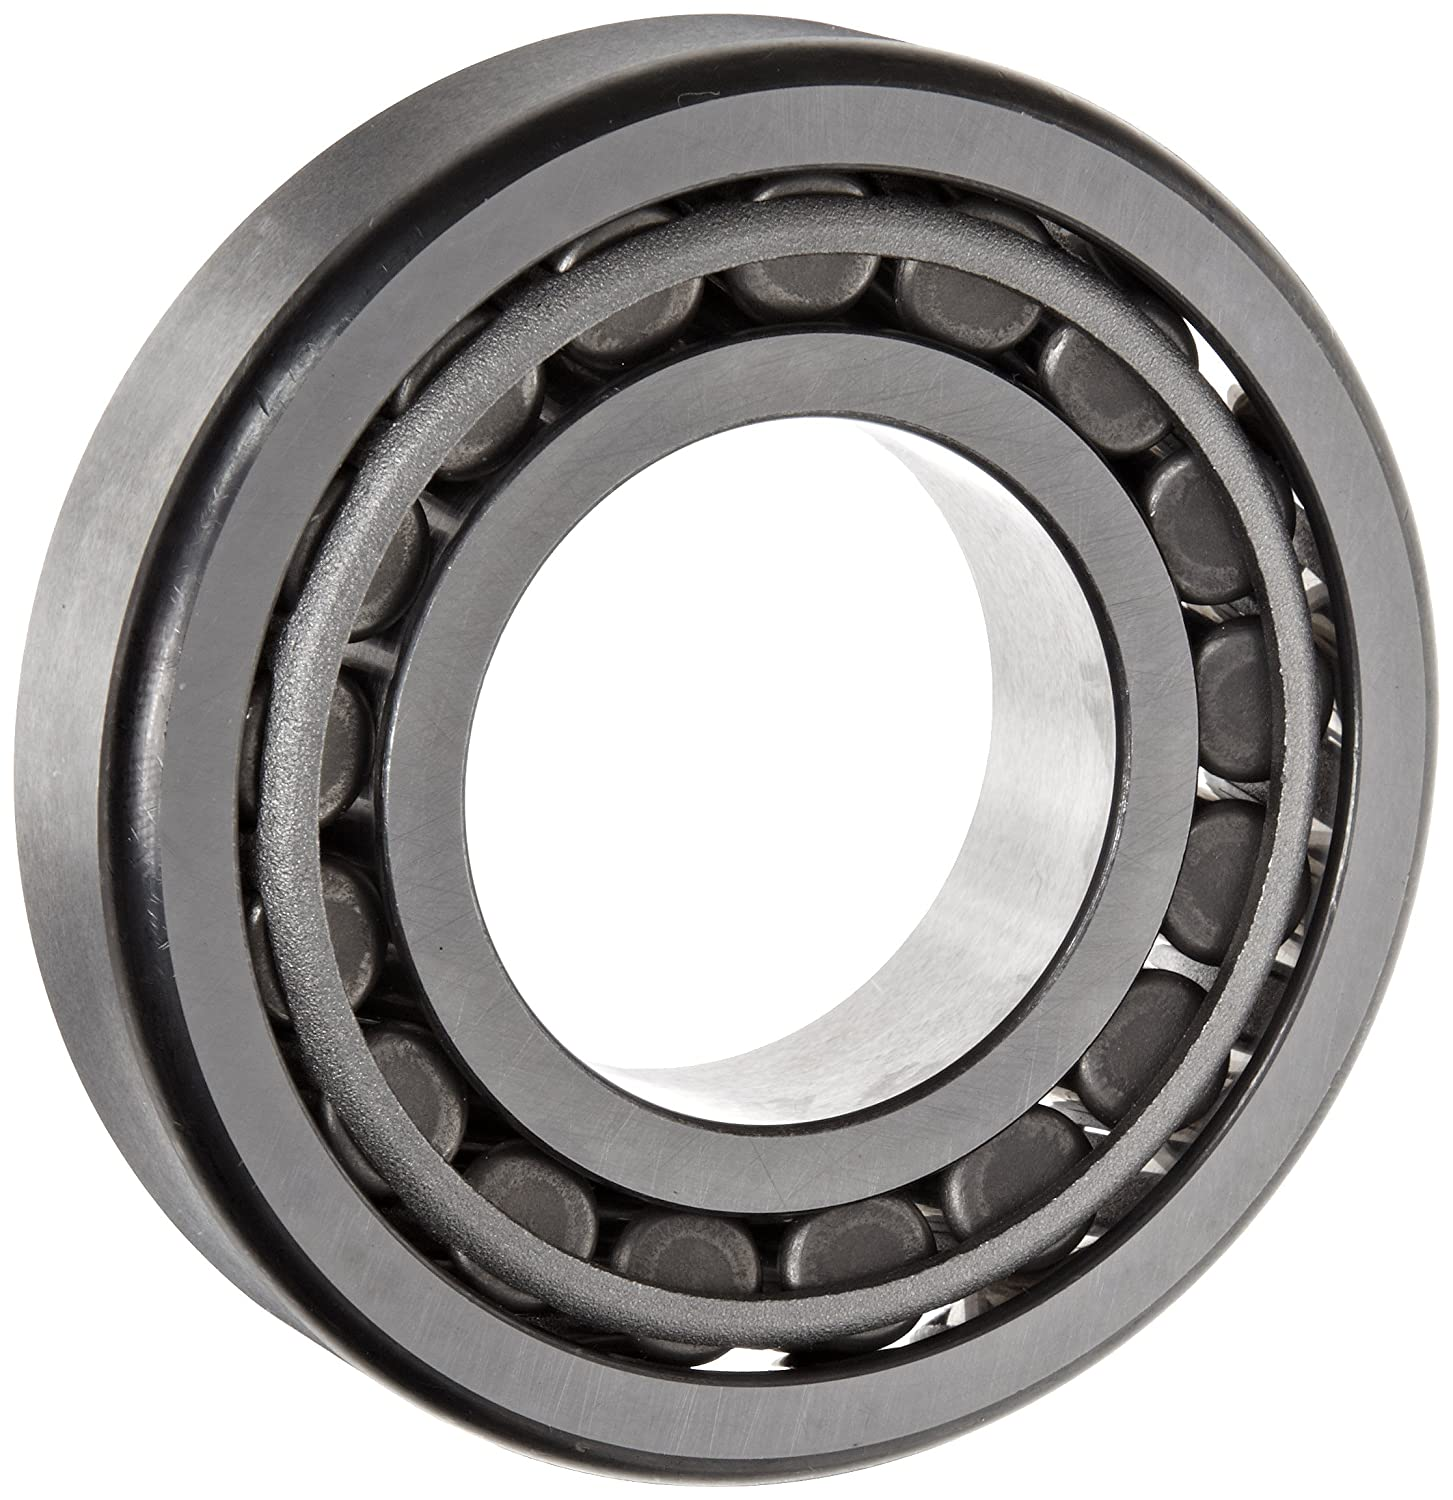 FAG 30204A Tapered Roller Bearing Cone and Cup Set, Standard Tolerance, Metric, 20 mm ID, 47mm OD, 15.25mm Width, 17000rpm Maximum Rotational Speed